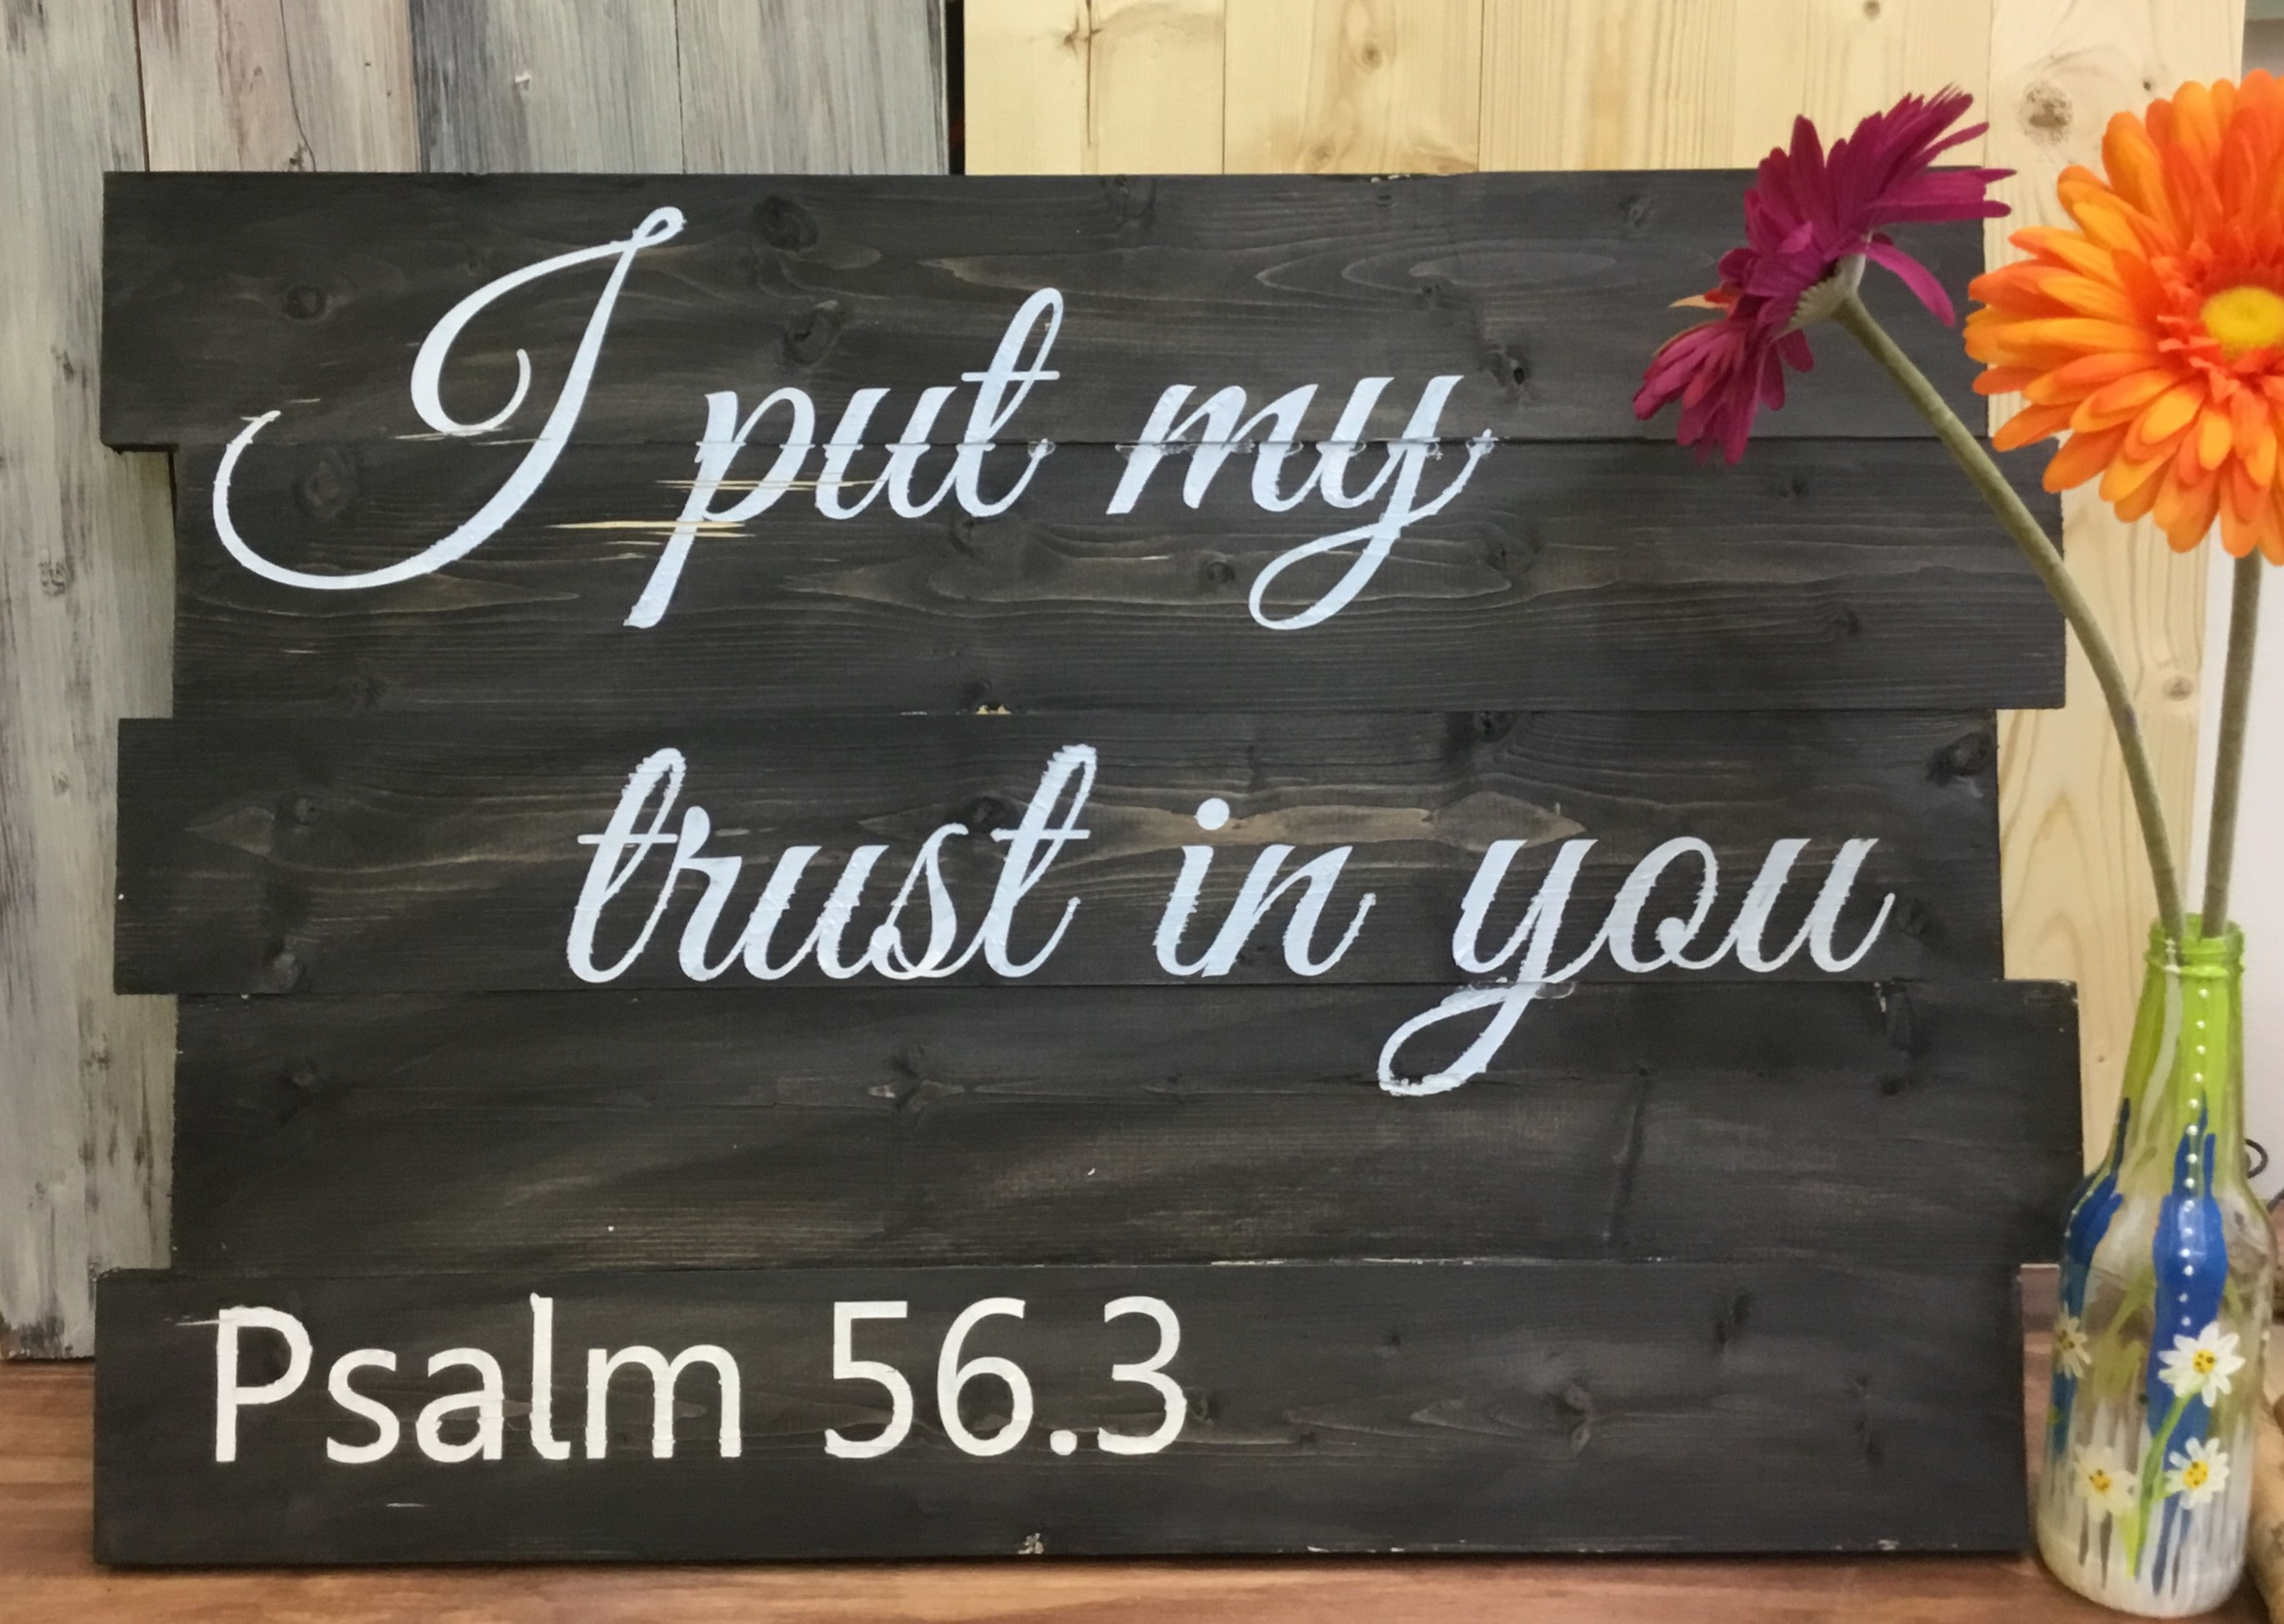 I put my trust in you